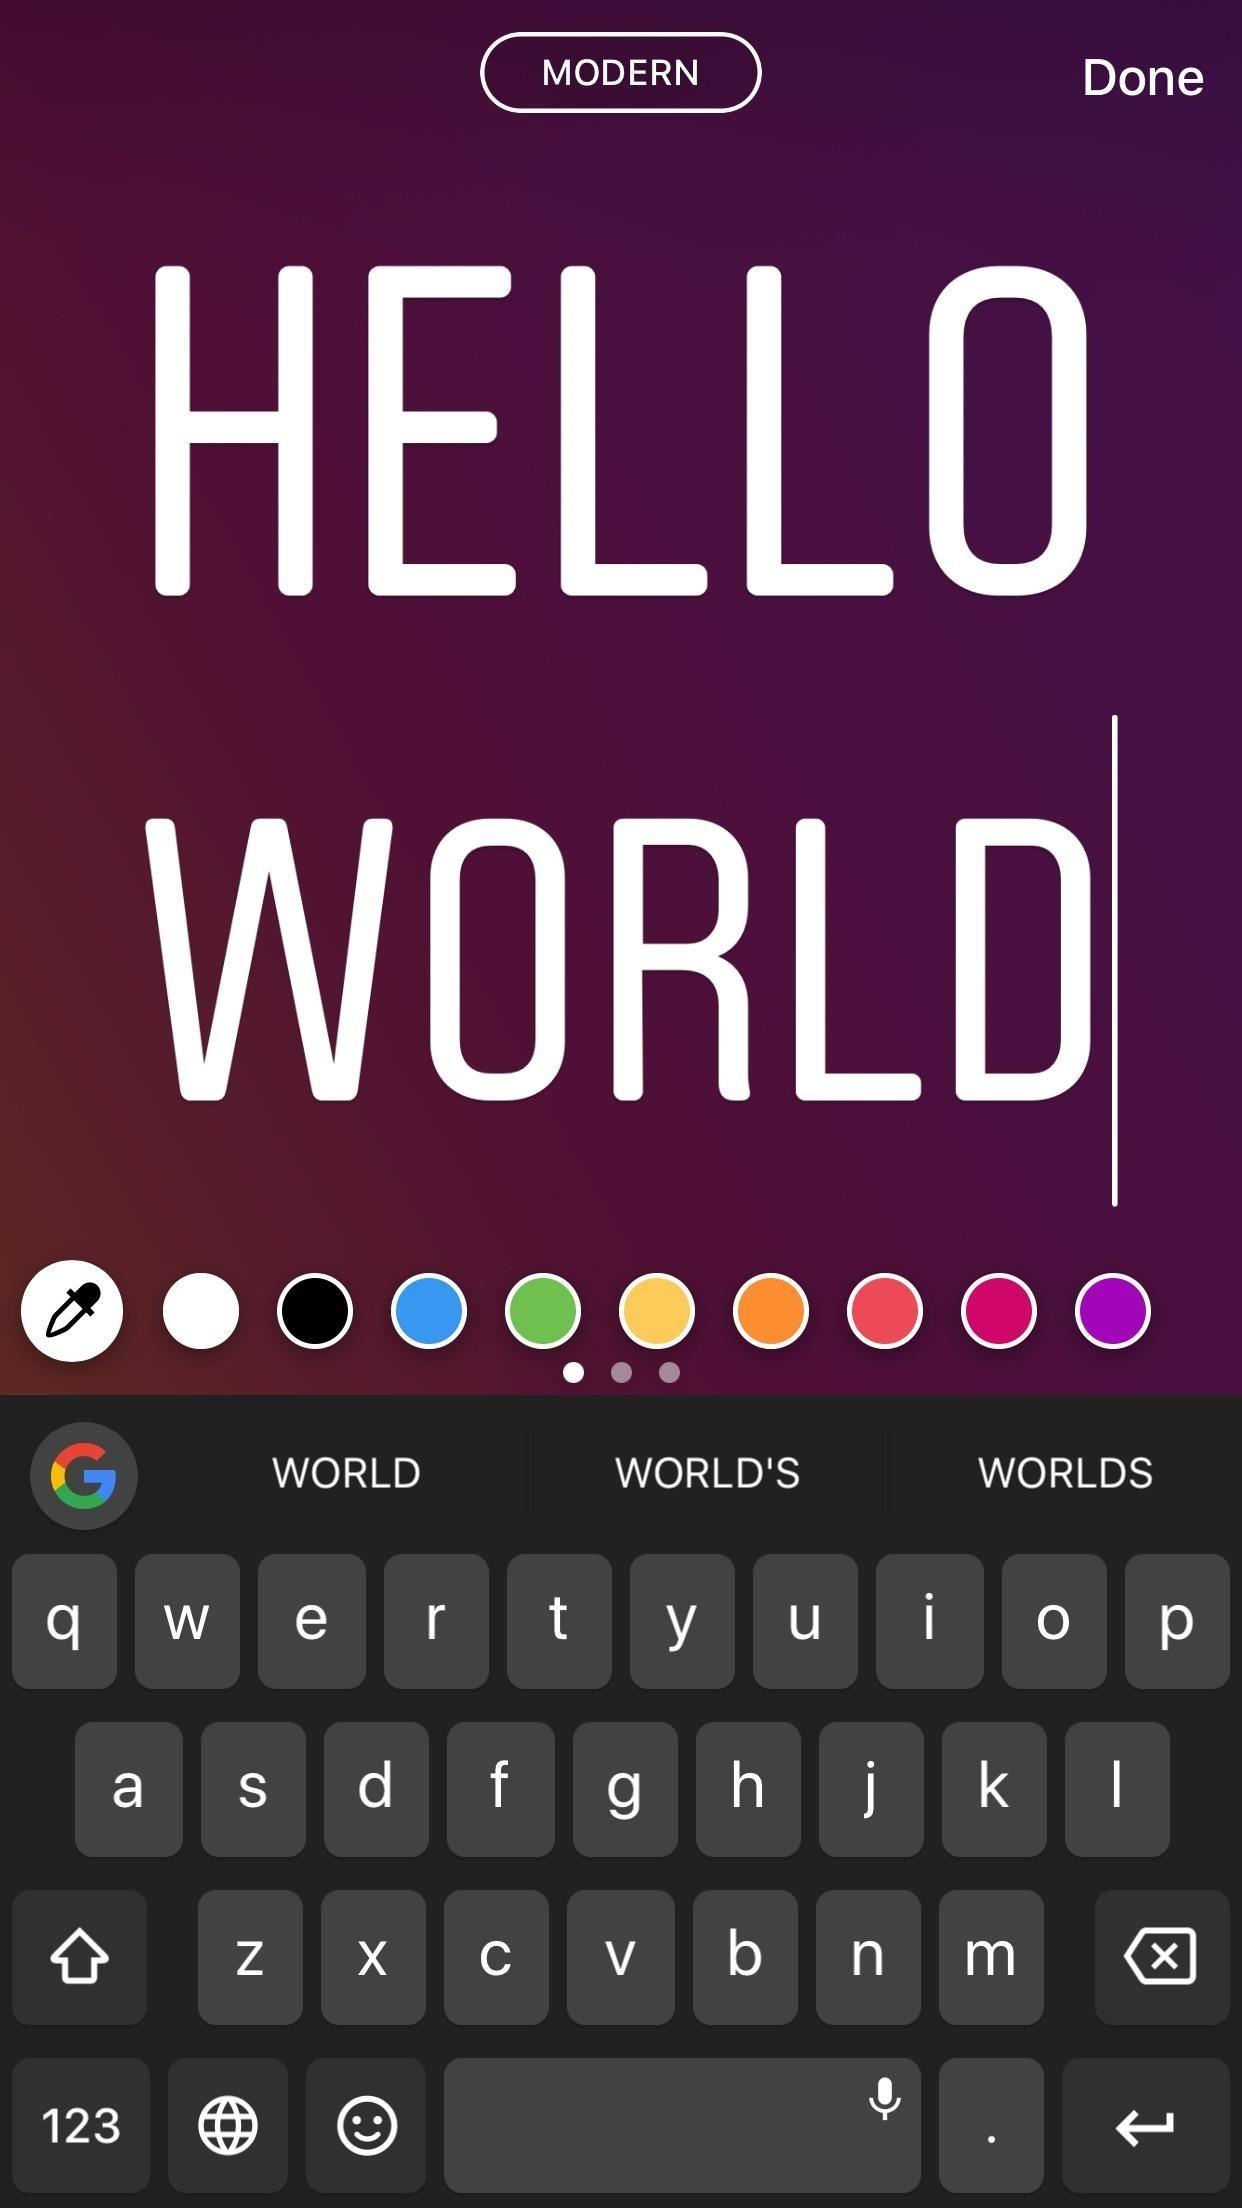 Instagram 101: How to Use Type Mode for Colorful Text-Only Stories